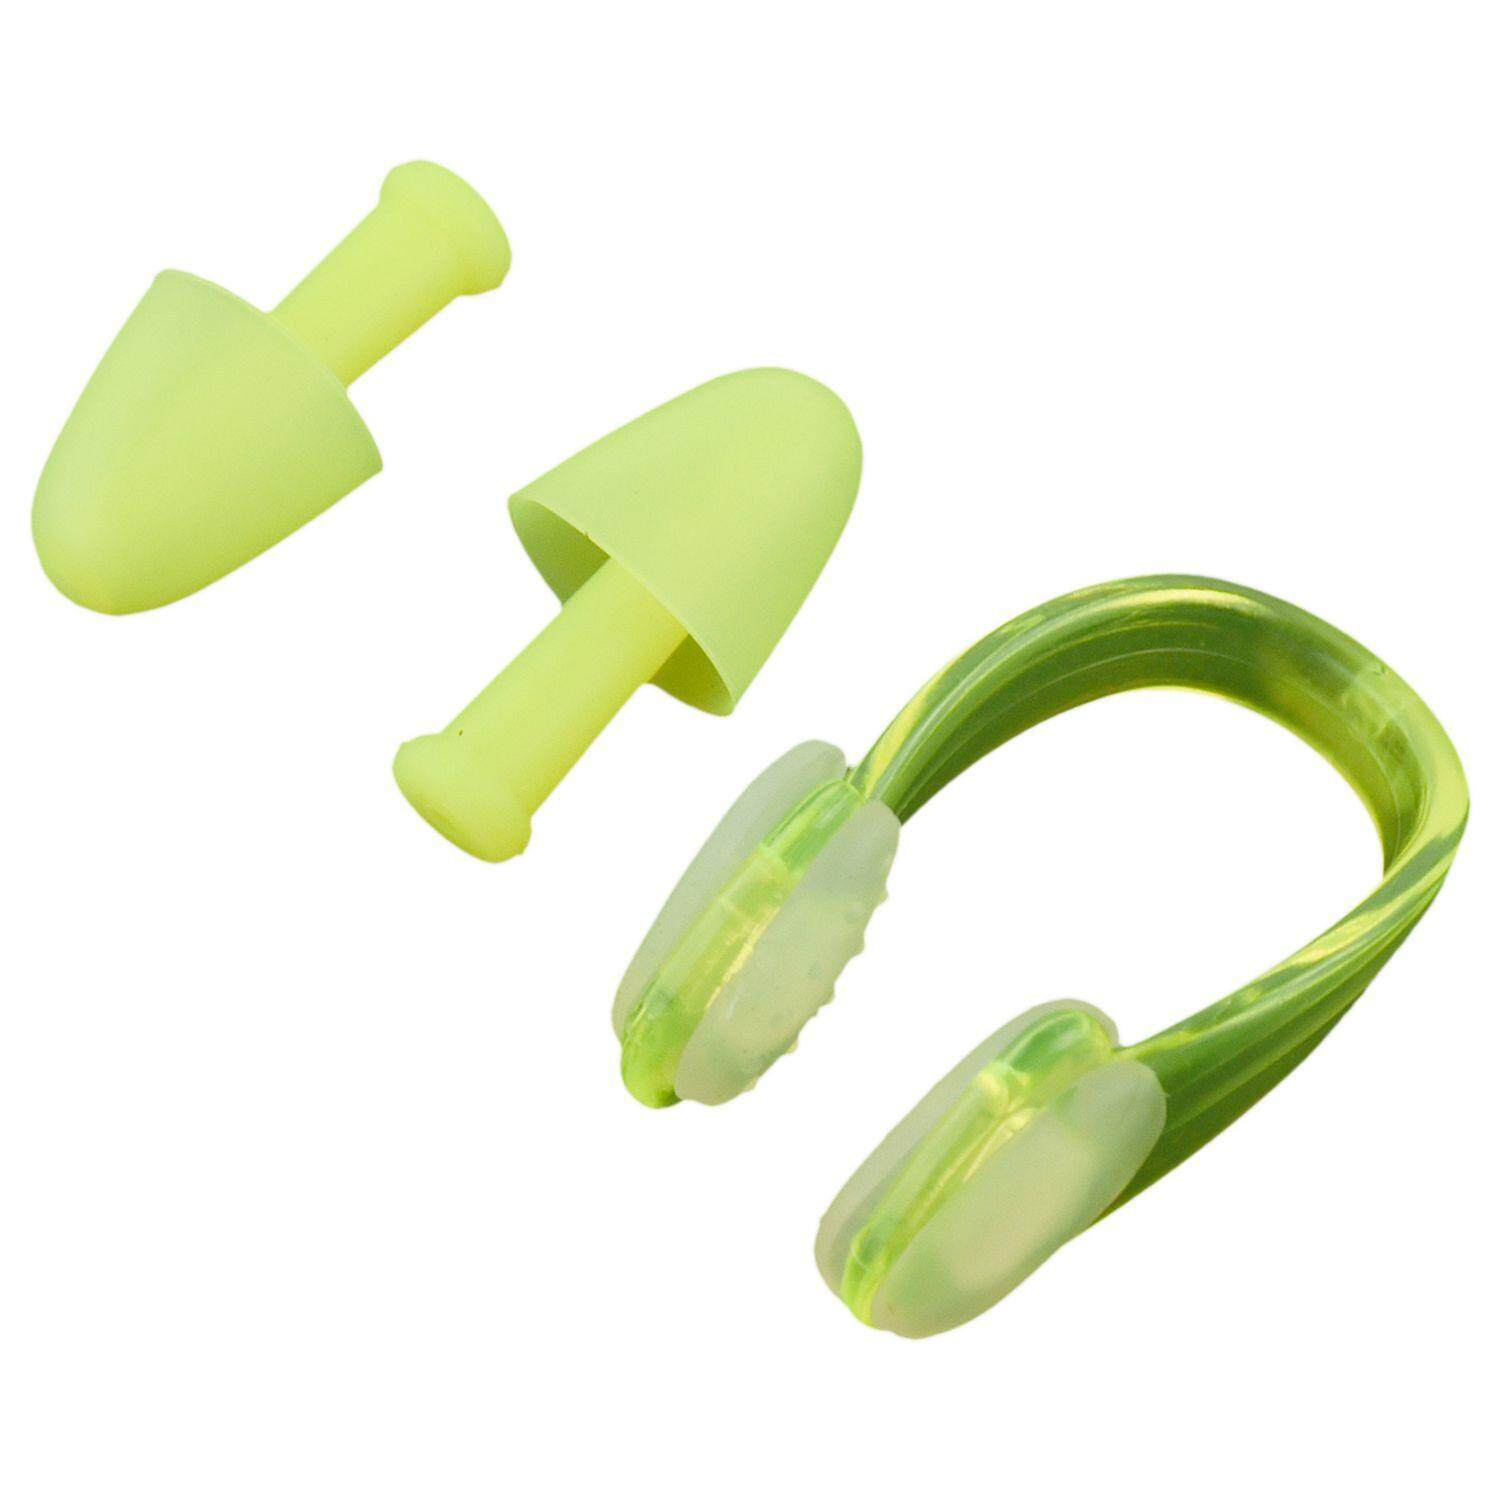 Soft Silicone Swimmer Swimming Protector Earplugs Nose Clip Yellow With Case By Lefueletronic.